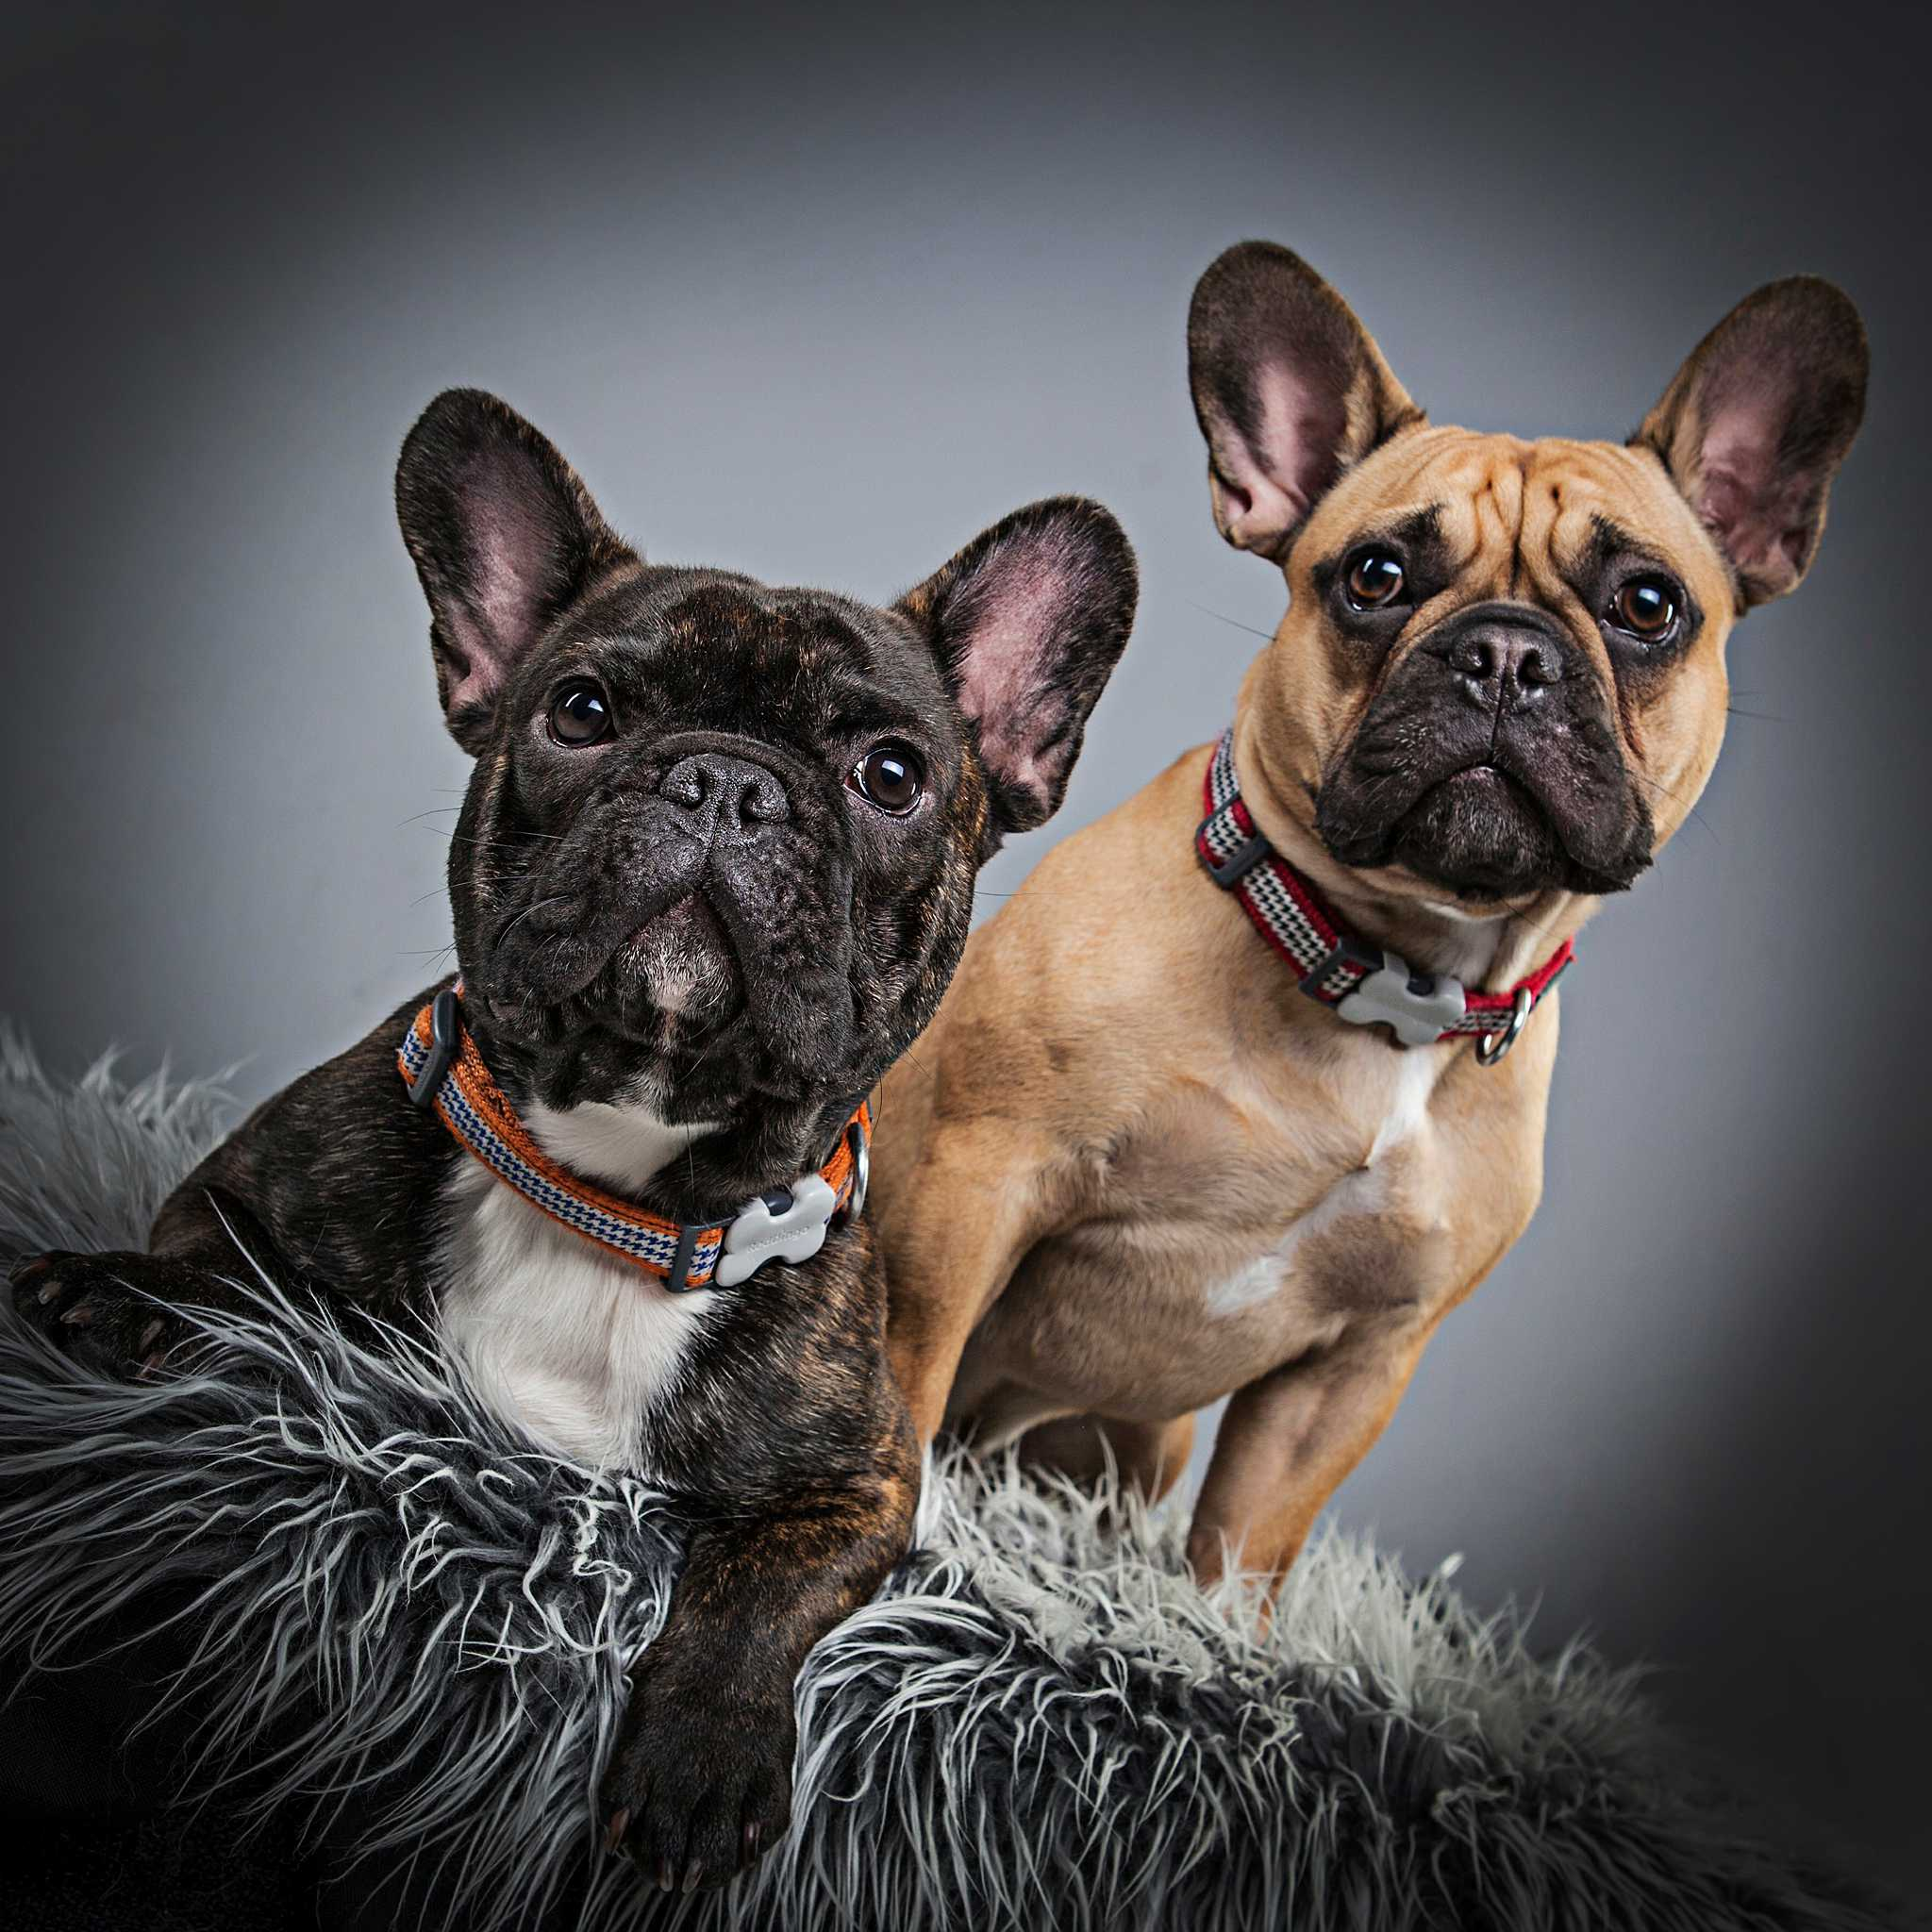 Its a frenchie frenzy! - Bartley Studios